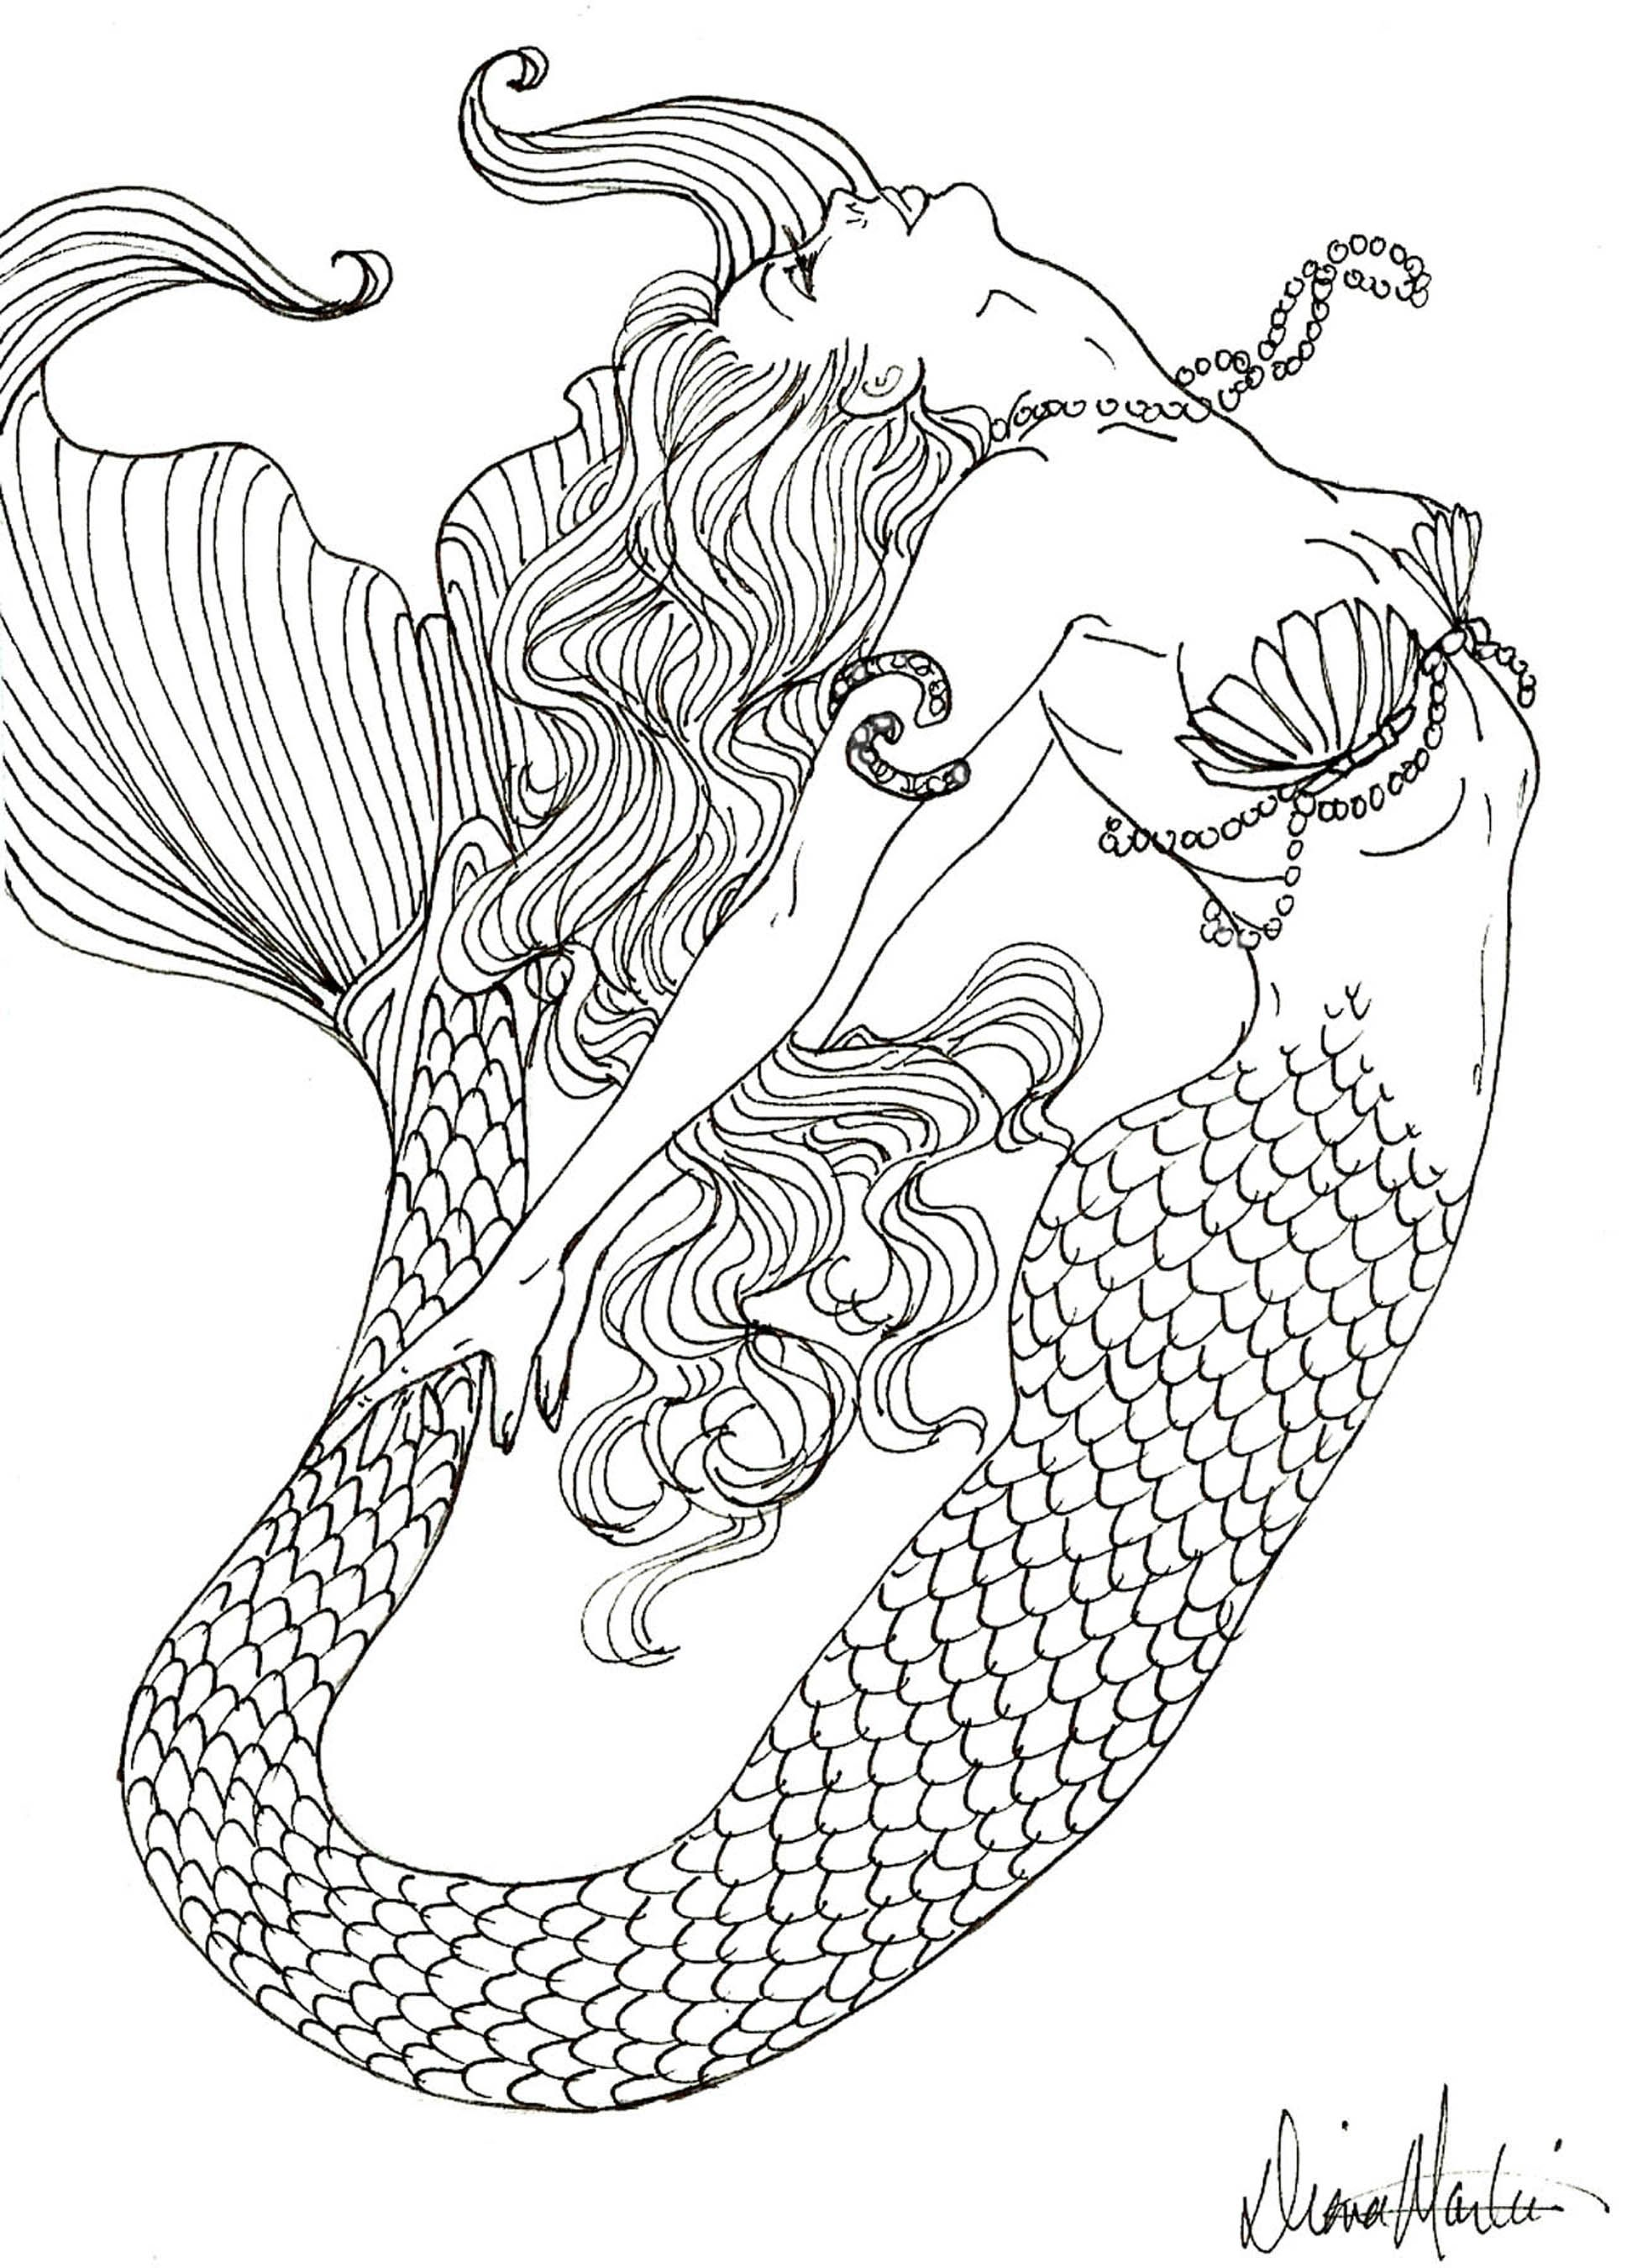 My Eyes Adore You By Diana Martin Entire Coloring Book Available Mermaid Coloring Pages Mermaid Coloring Coloring Pages